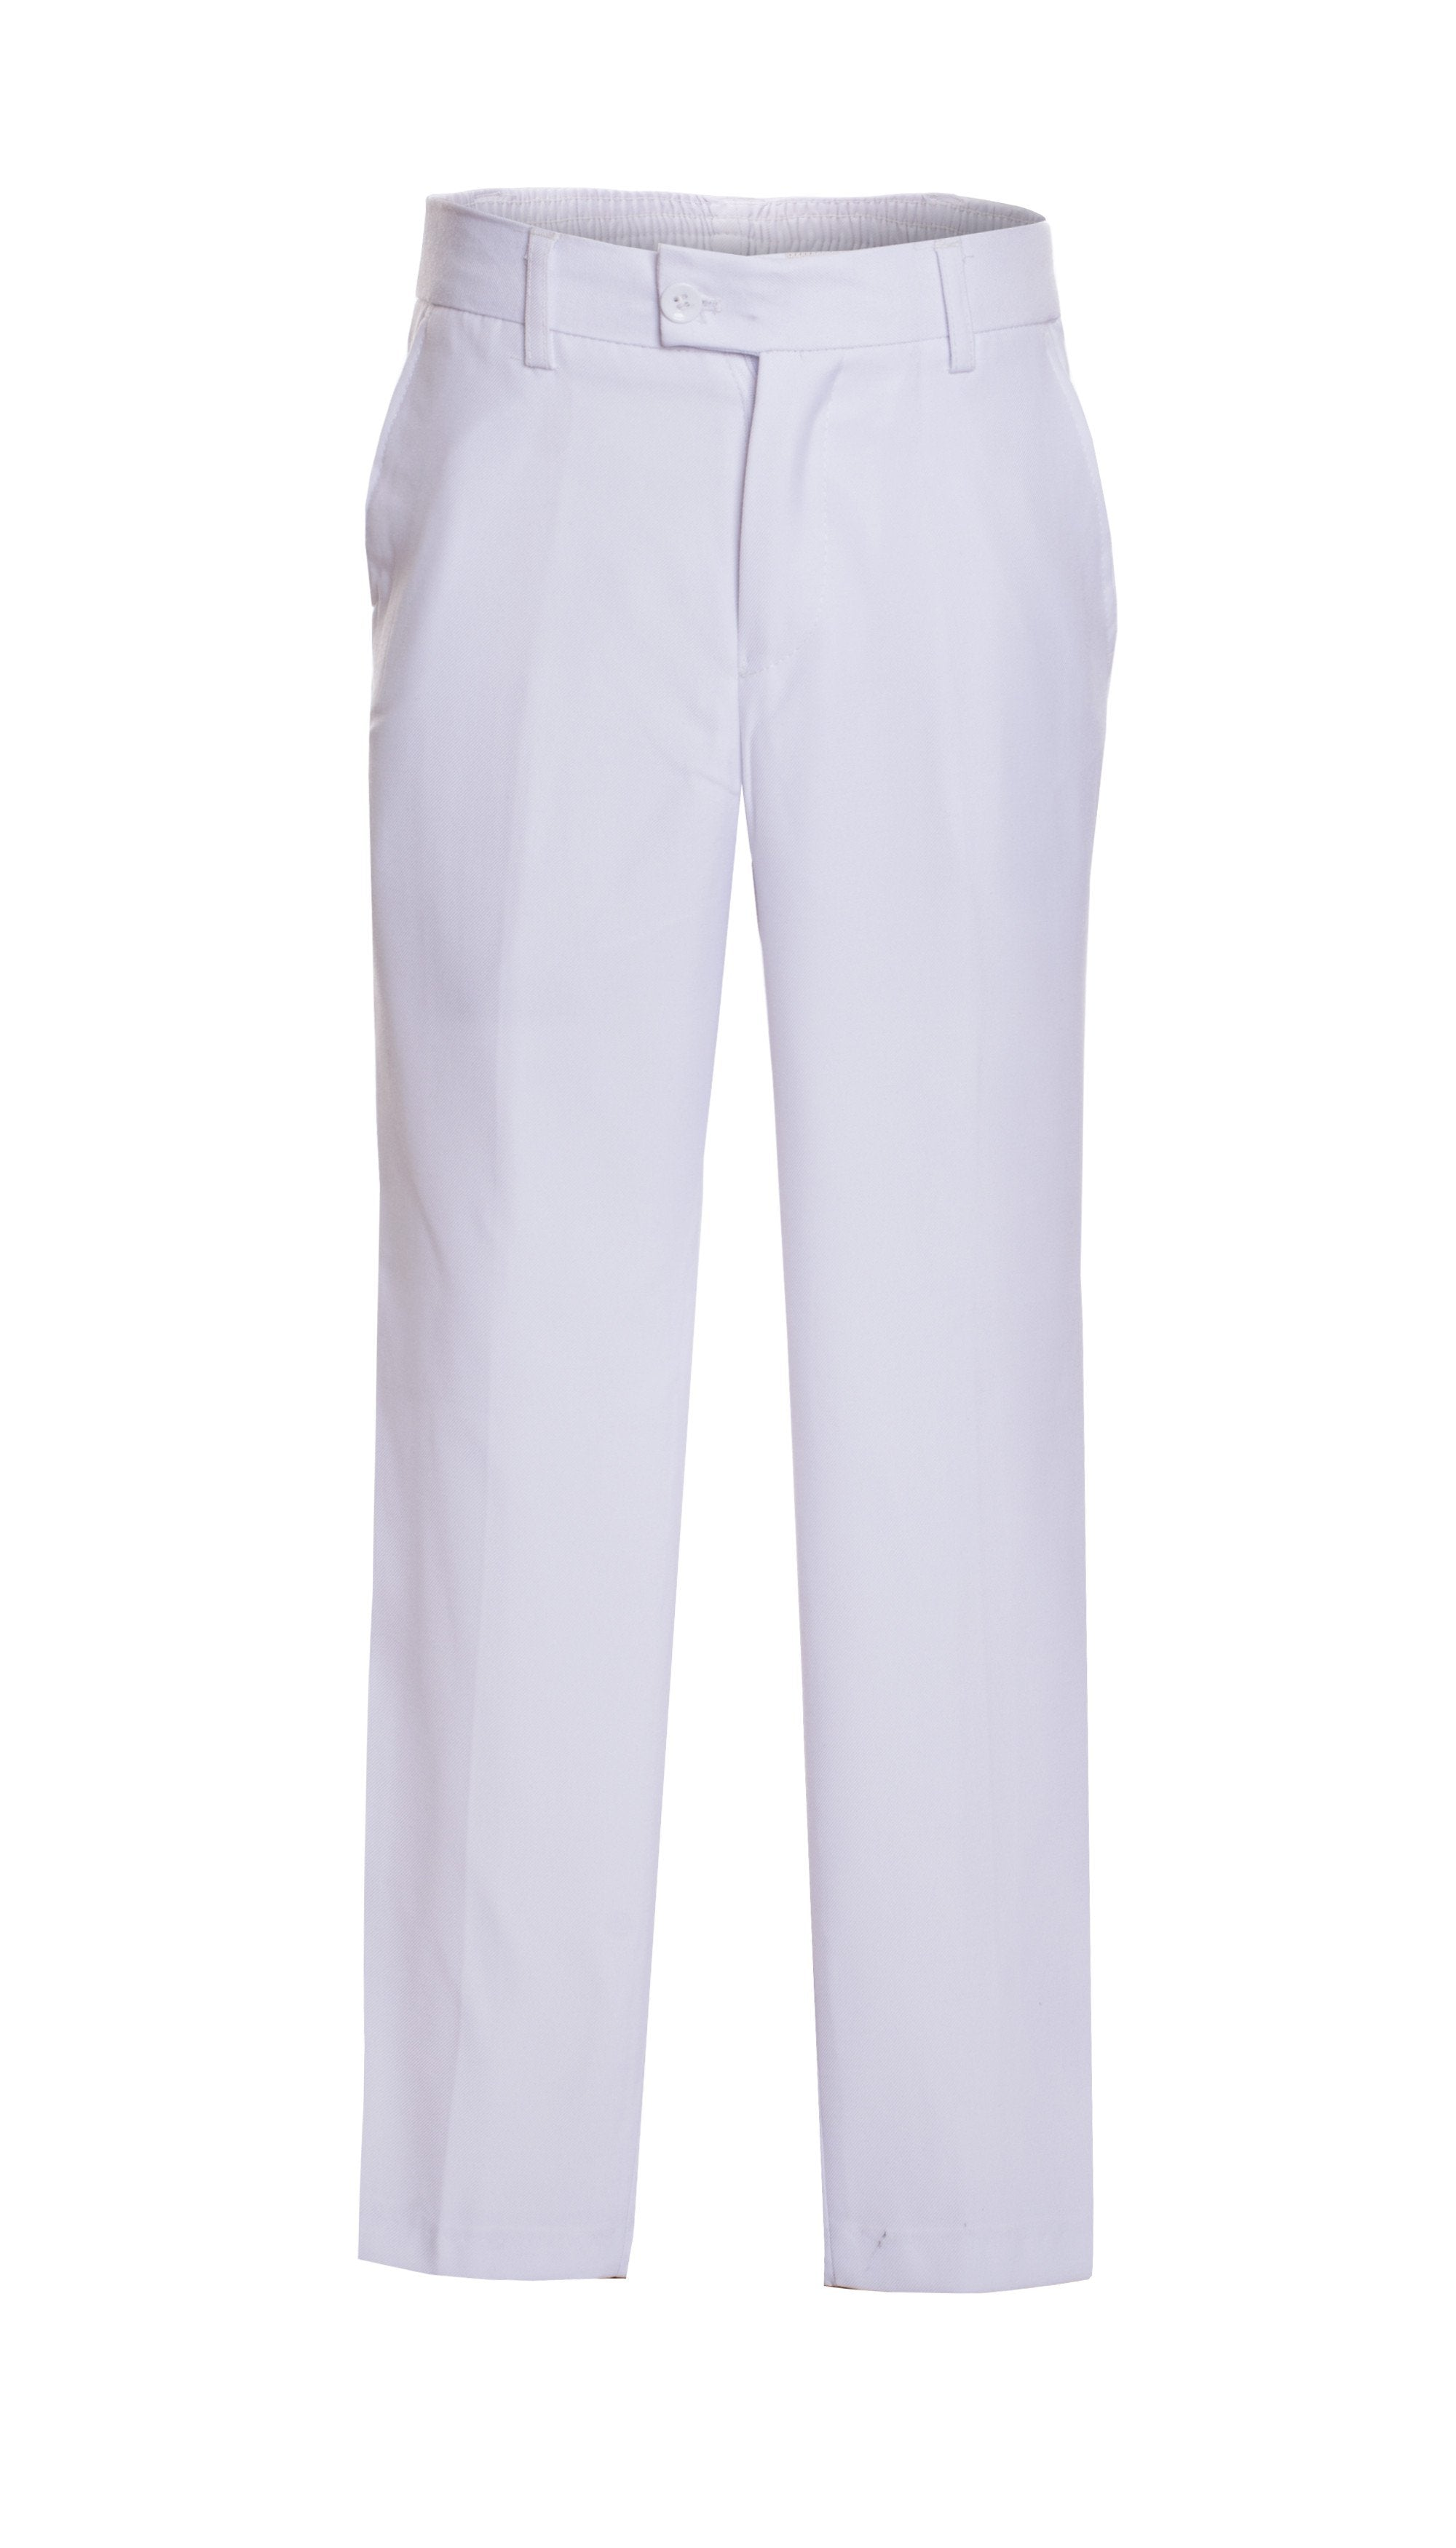 Ferrecci Boys Ezra White Dress Pants